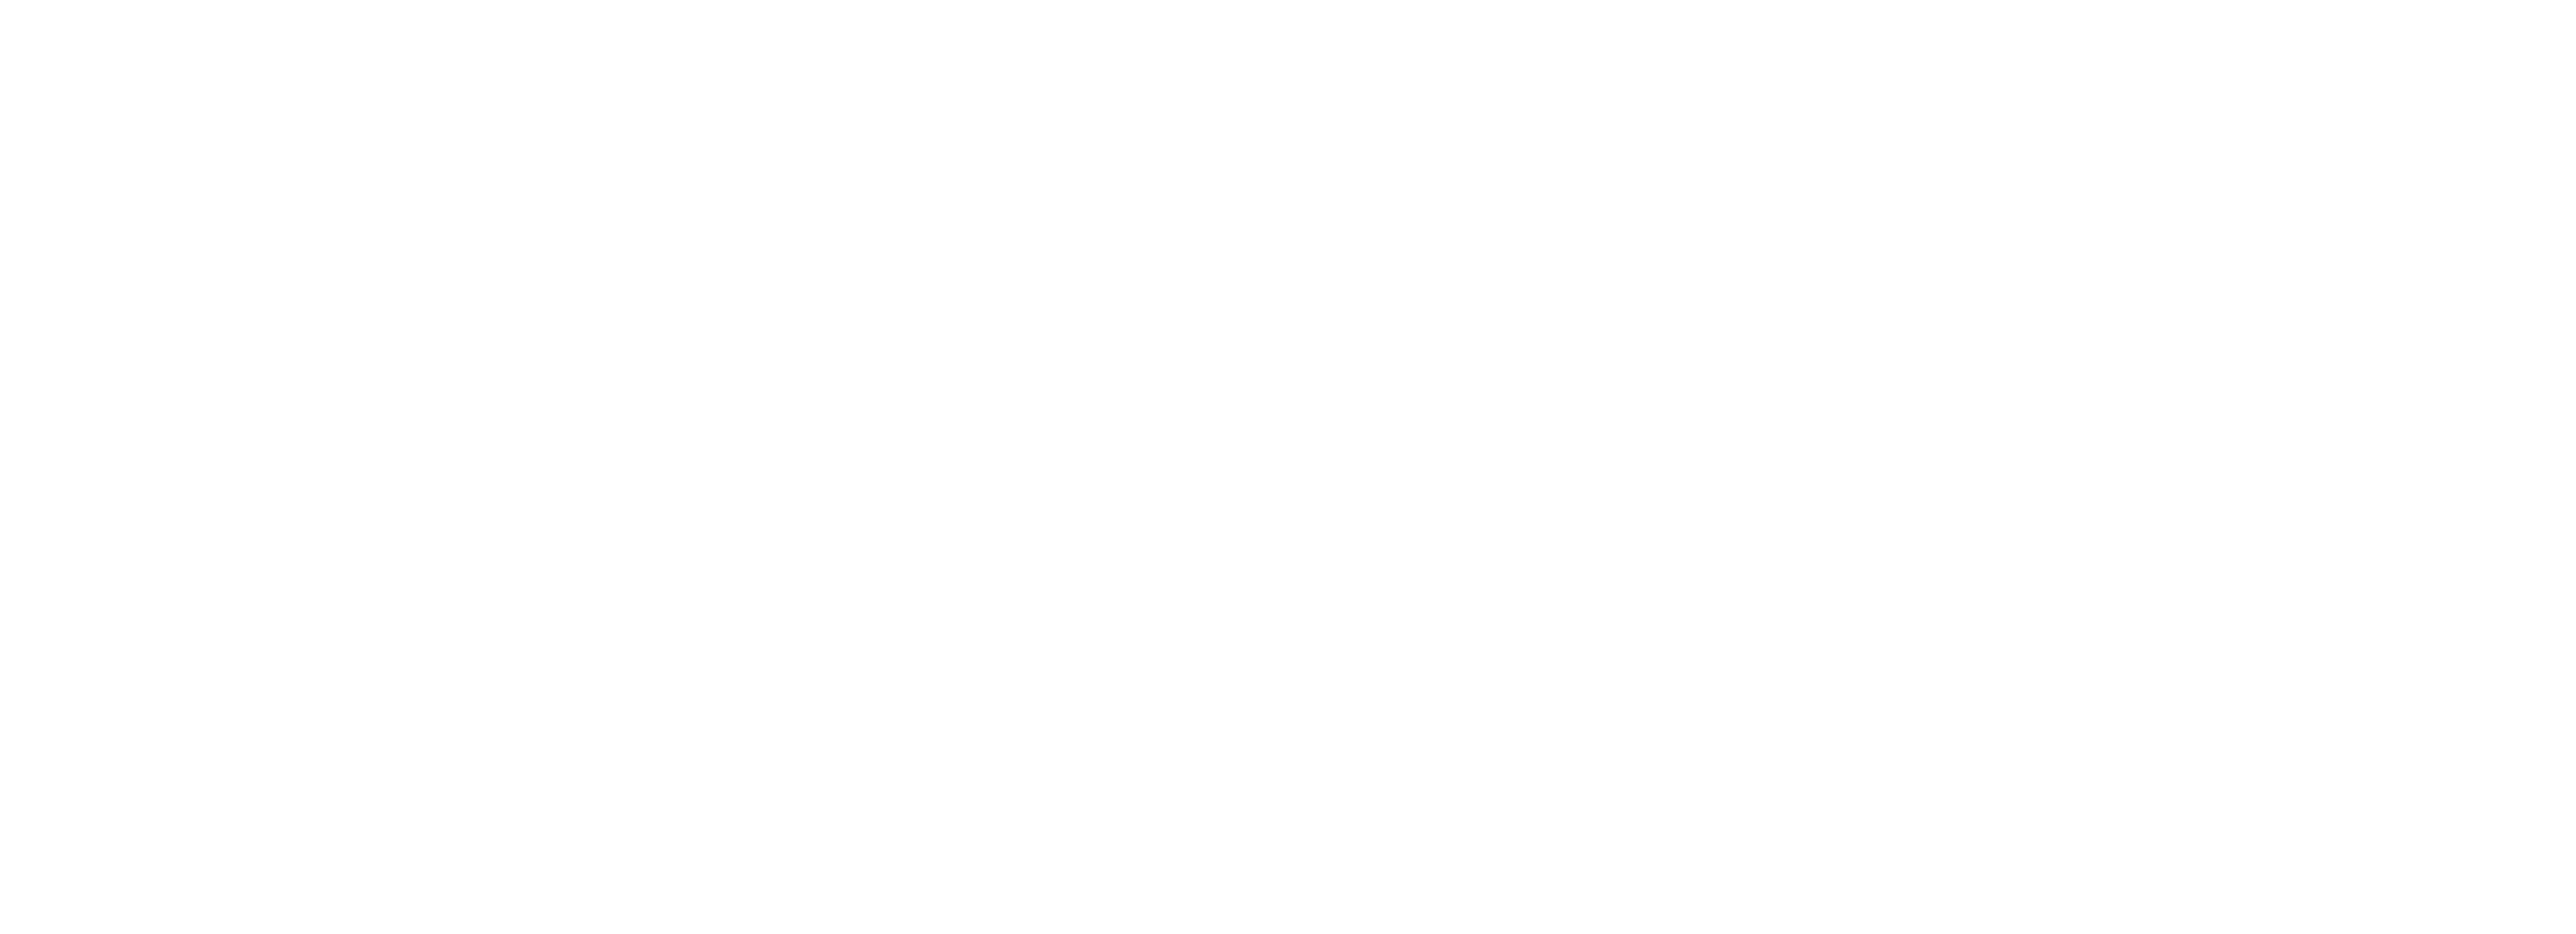 The Hi-Hats Edinburgh wedding and function band